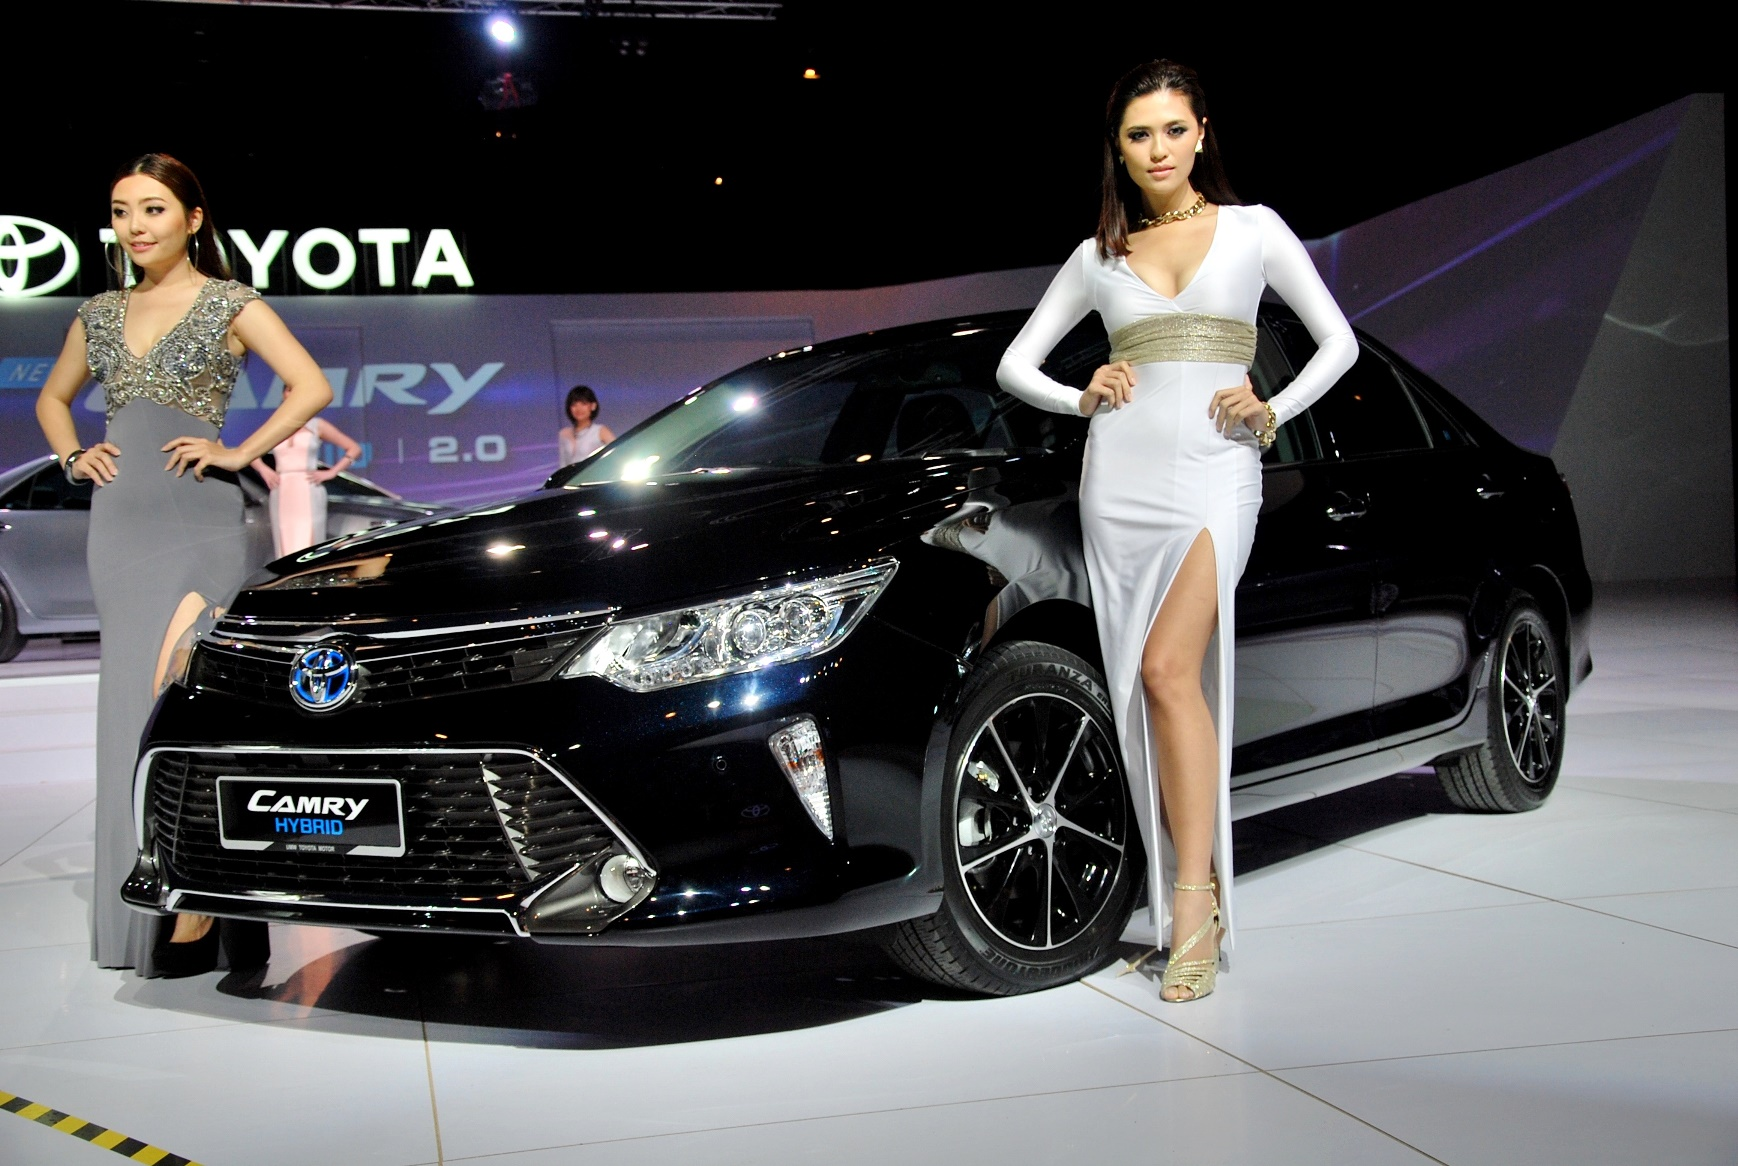 Here S Some Good News For Those Who Have Been Eyeing The Toyota Camry Hybrid